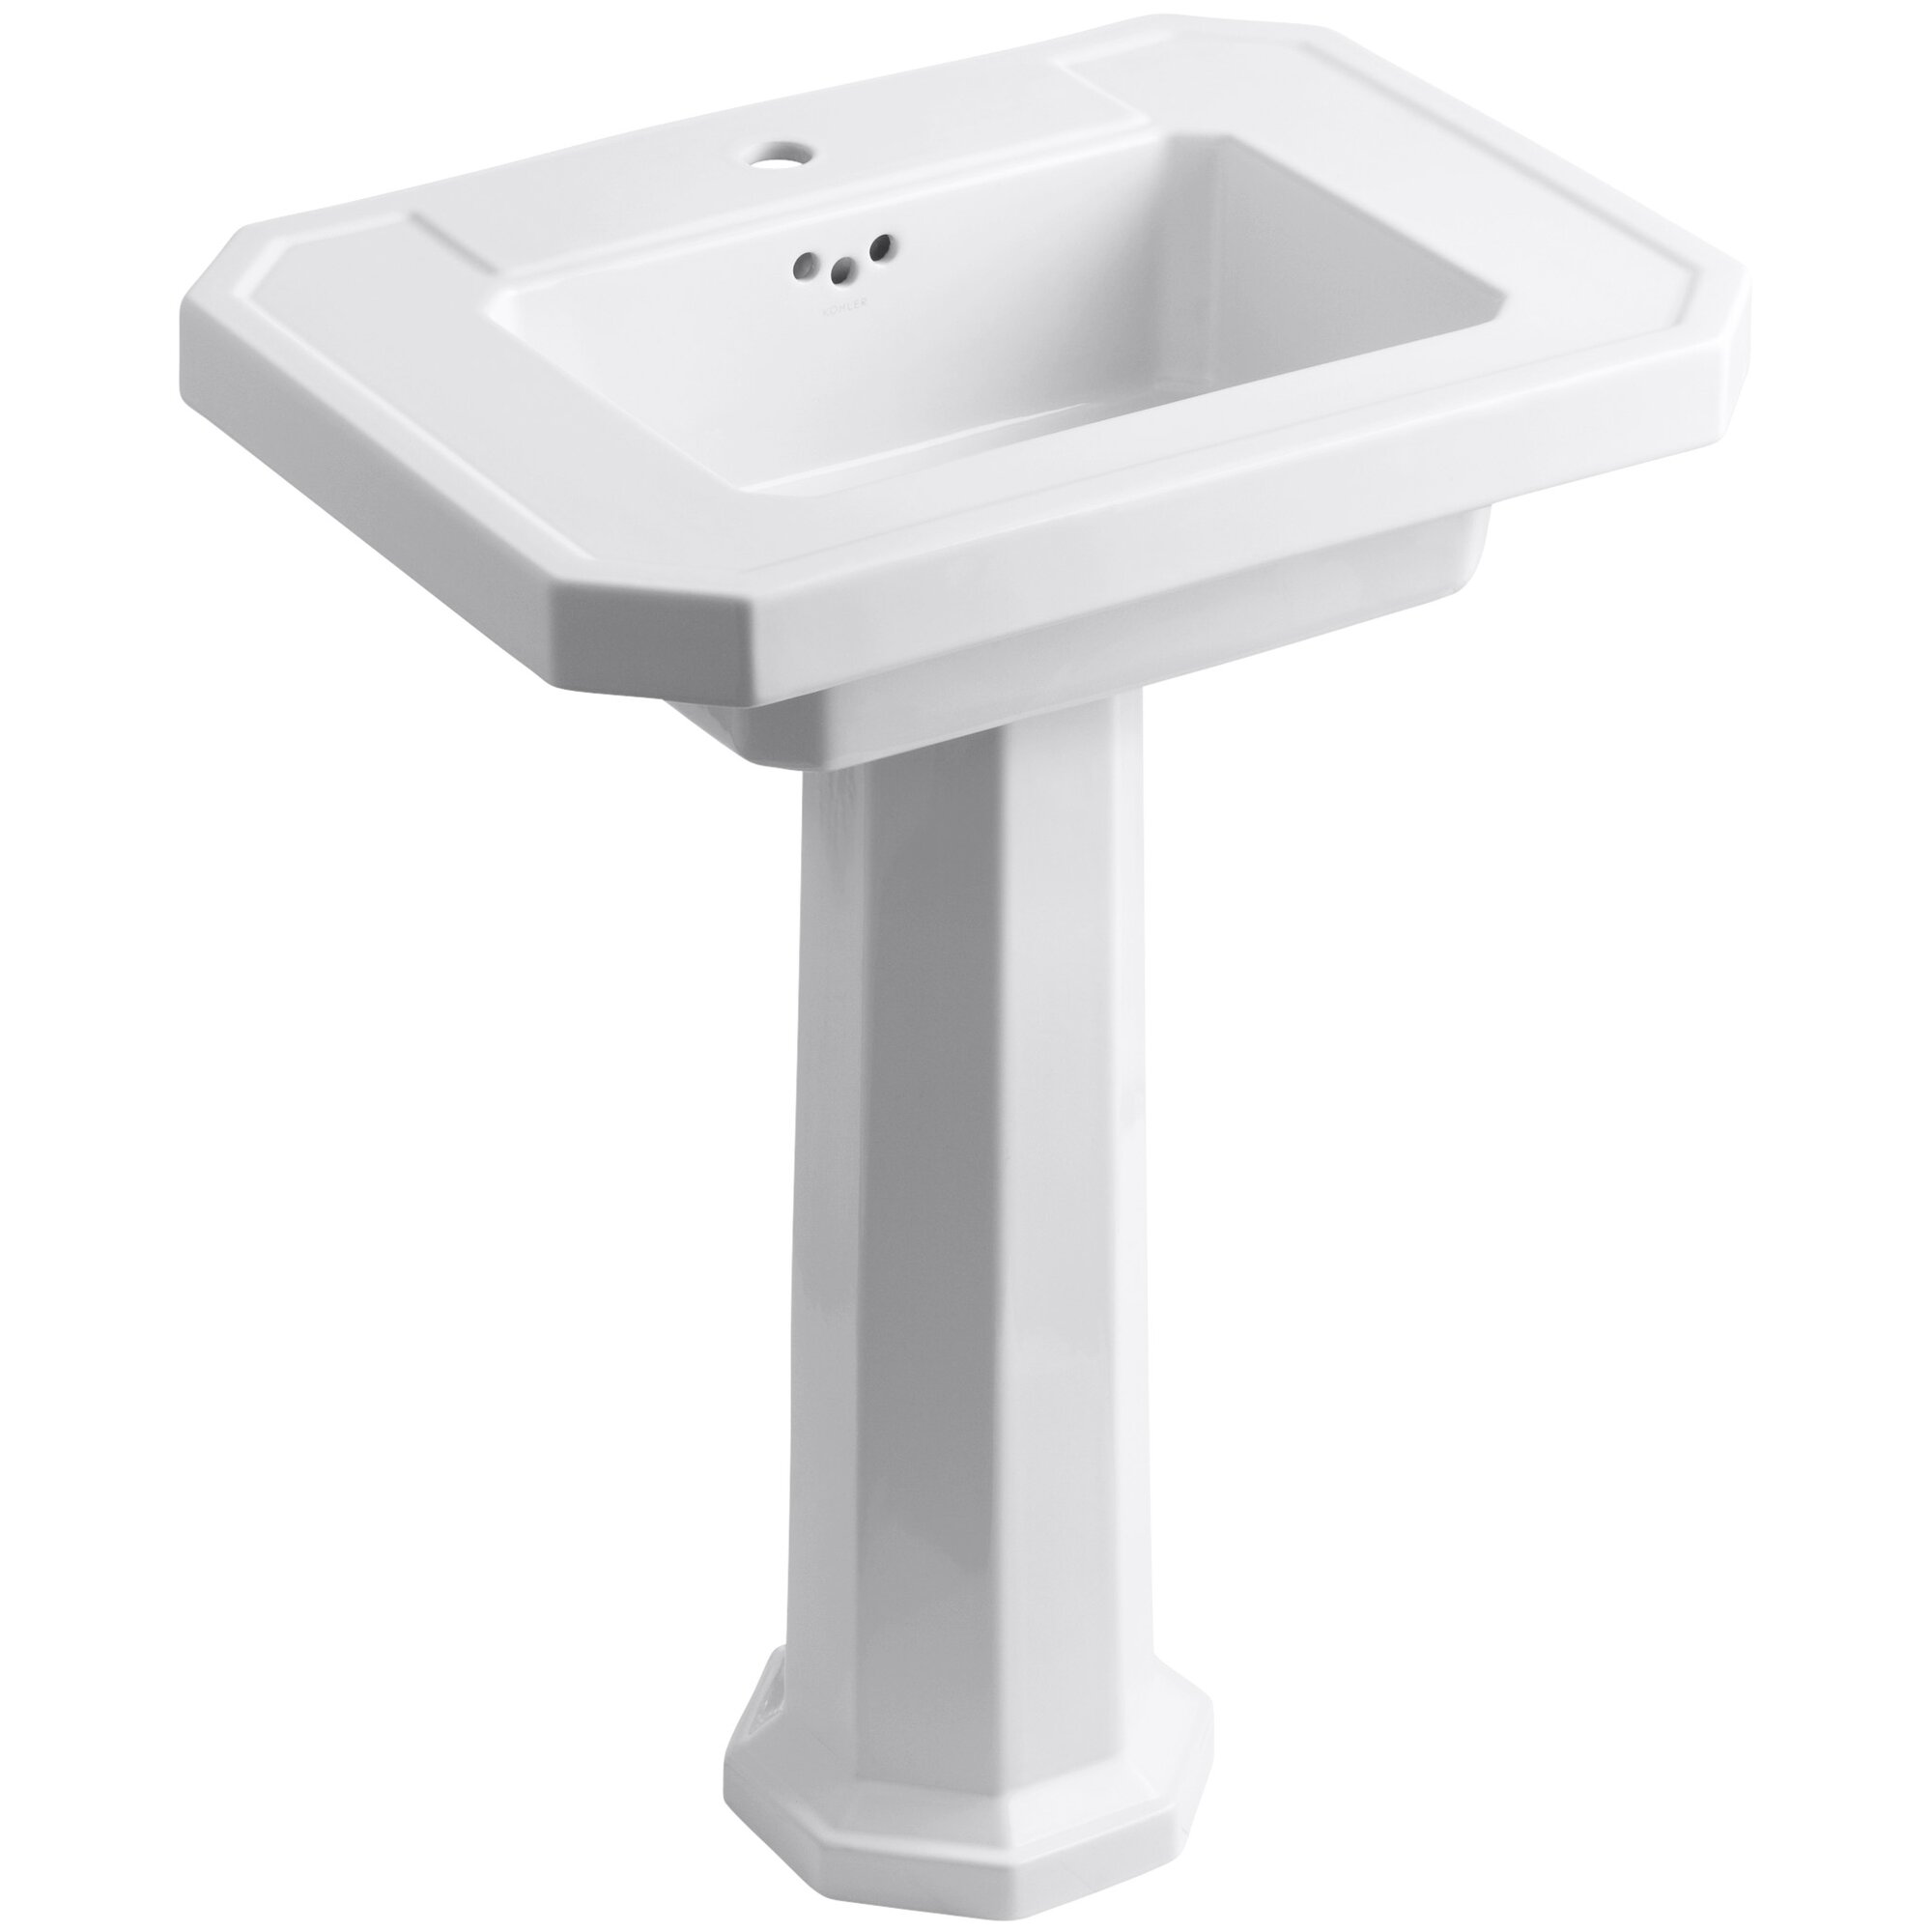 Kohler Kathryn 27 Pedestal Bathroom Sink With Overflow